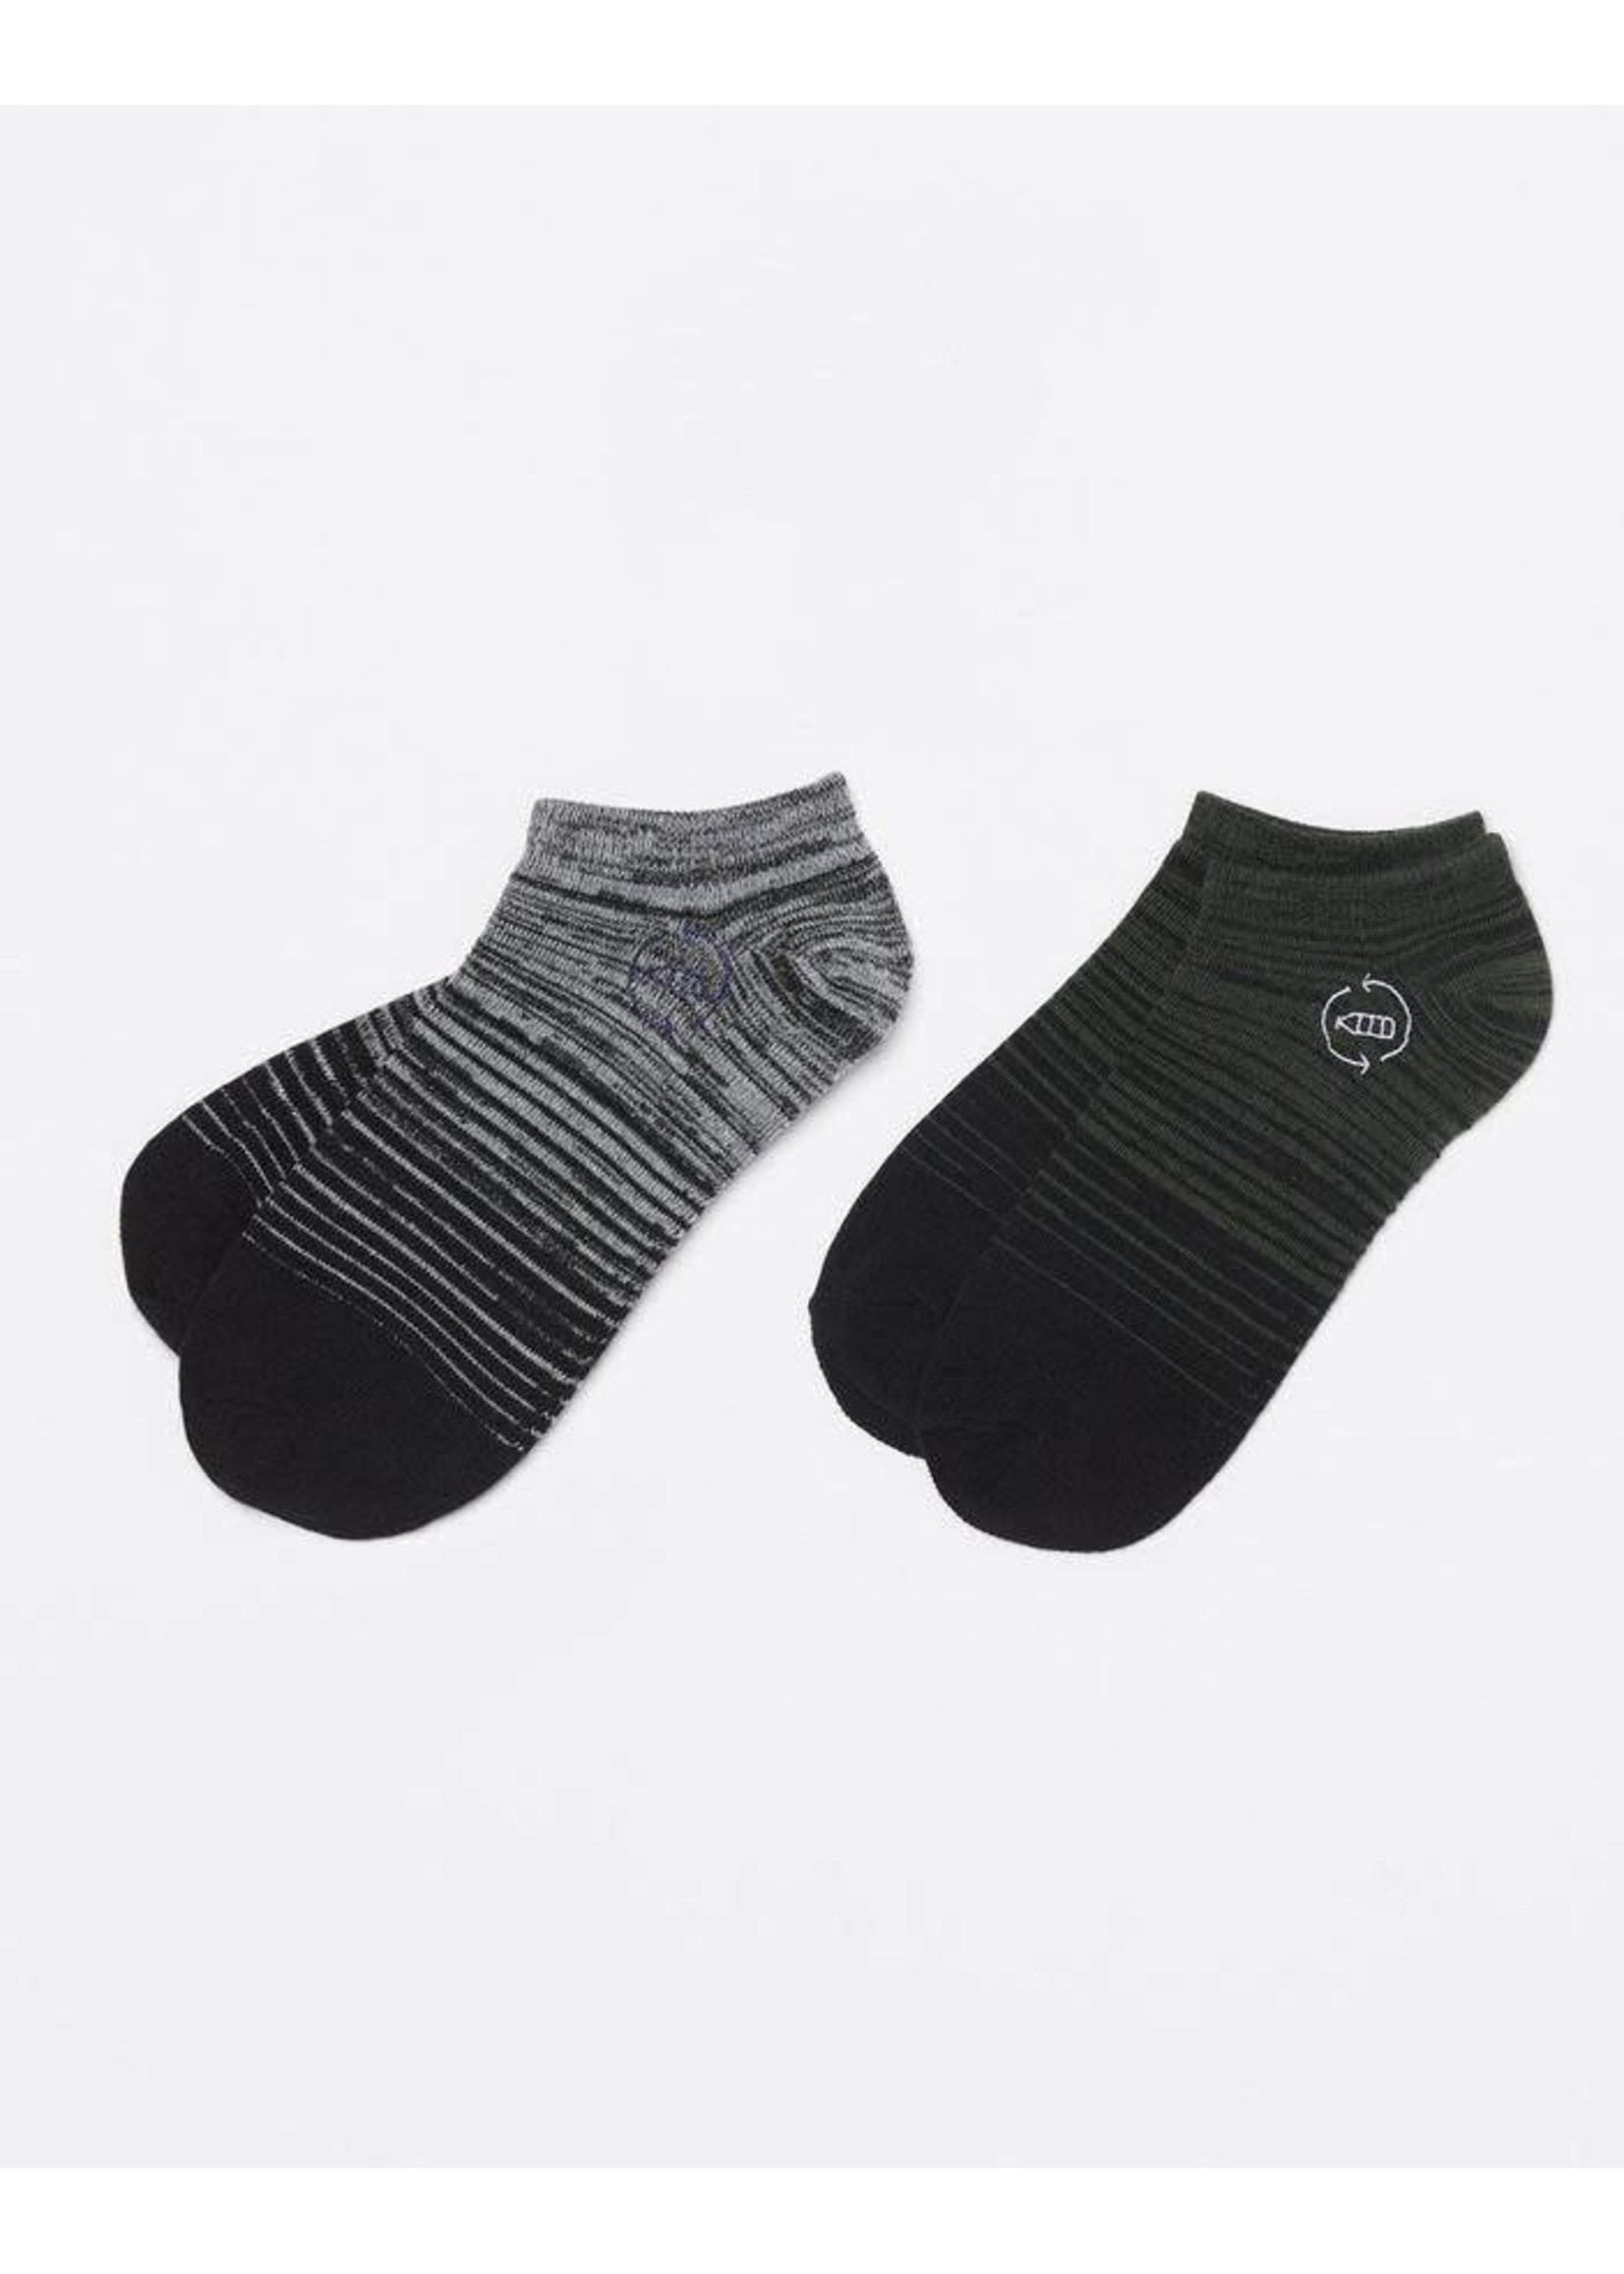 Ten Tree 2-BOTTLE ANKLE SOCK OS18-AWASO